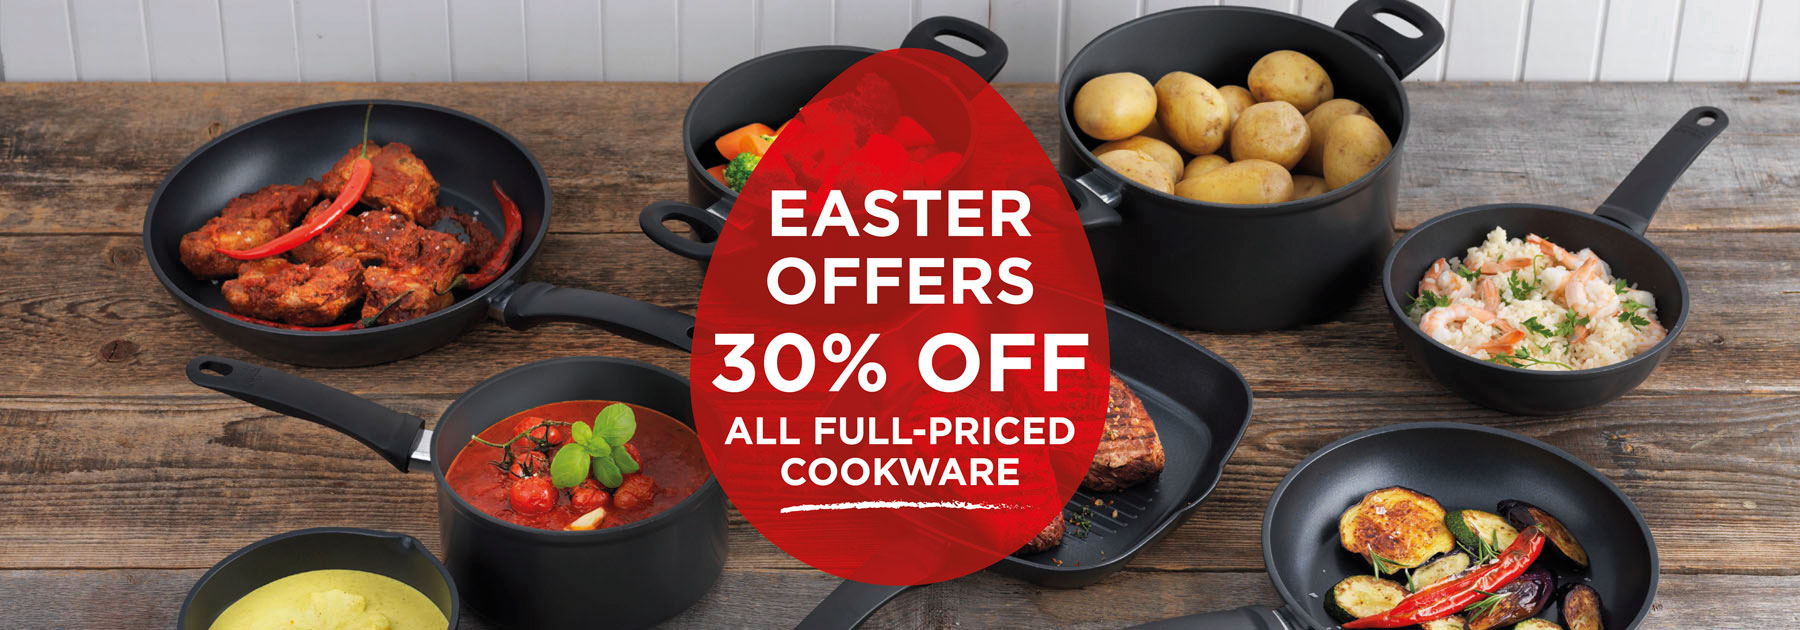 save, discounts, offers, promotions, easter, cookware